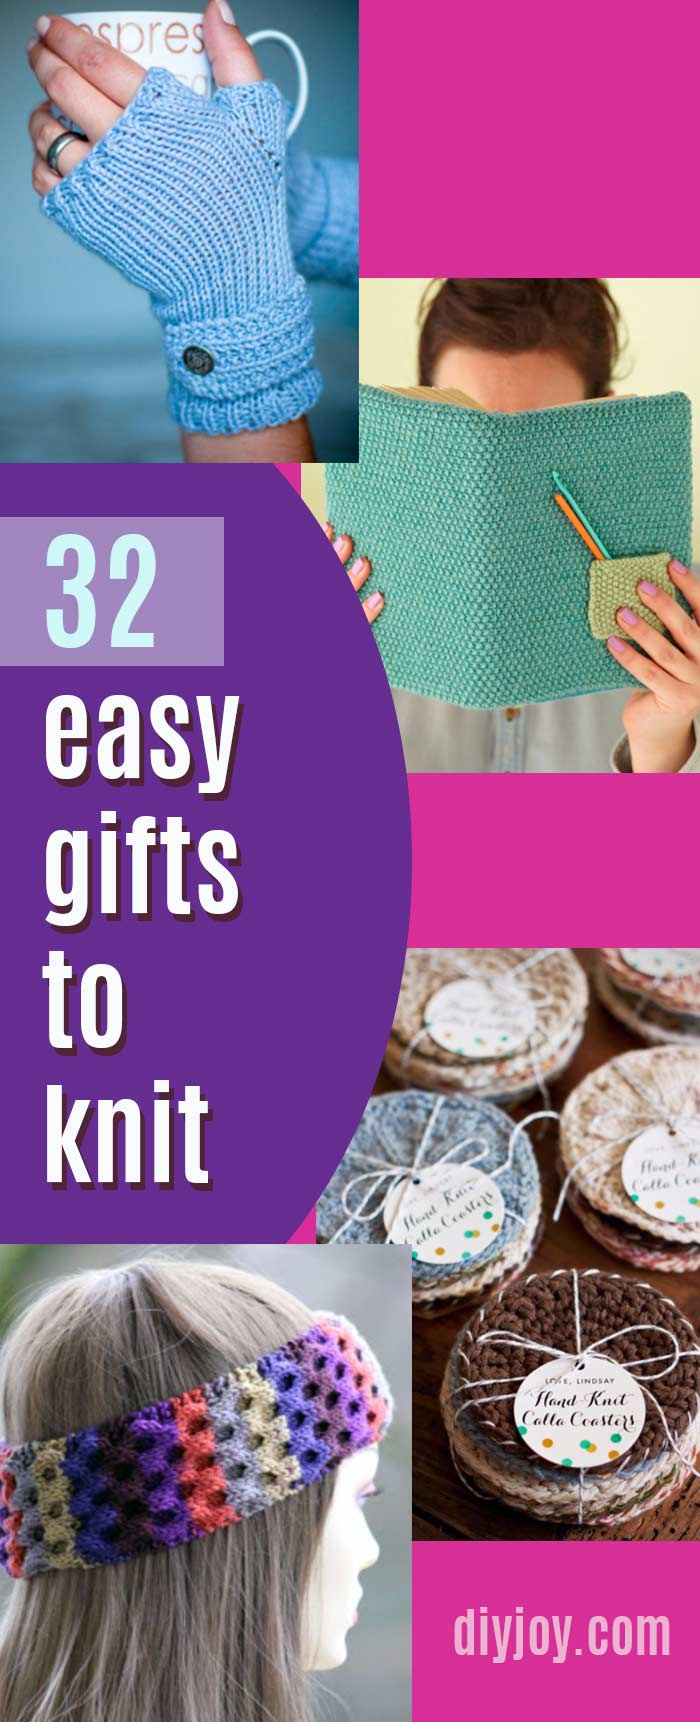 Easy Knitting Ideas for Gifts - Pinterest Best Knit Projects With Tutorial and Step by Step Instructions